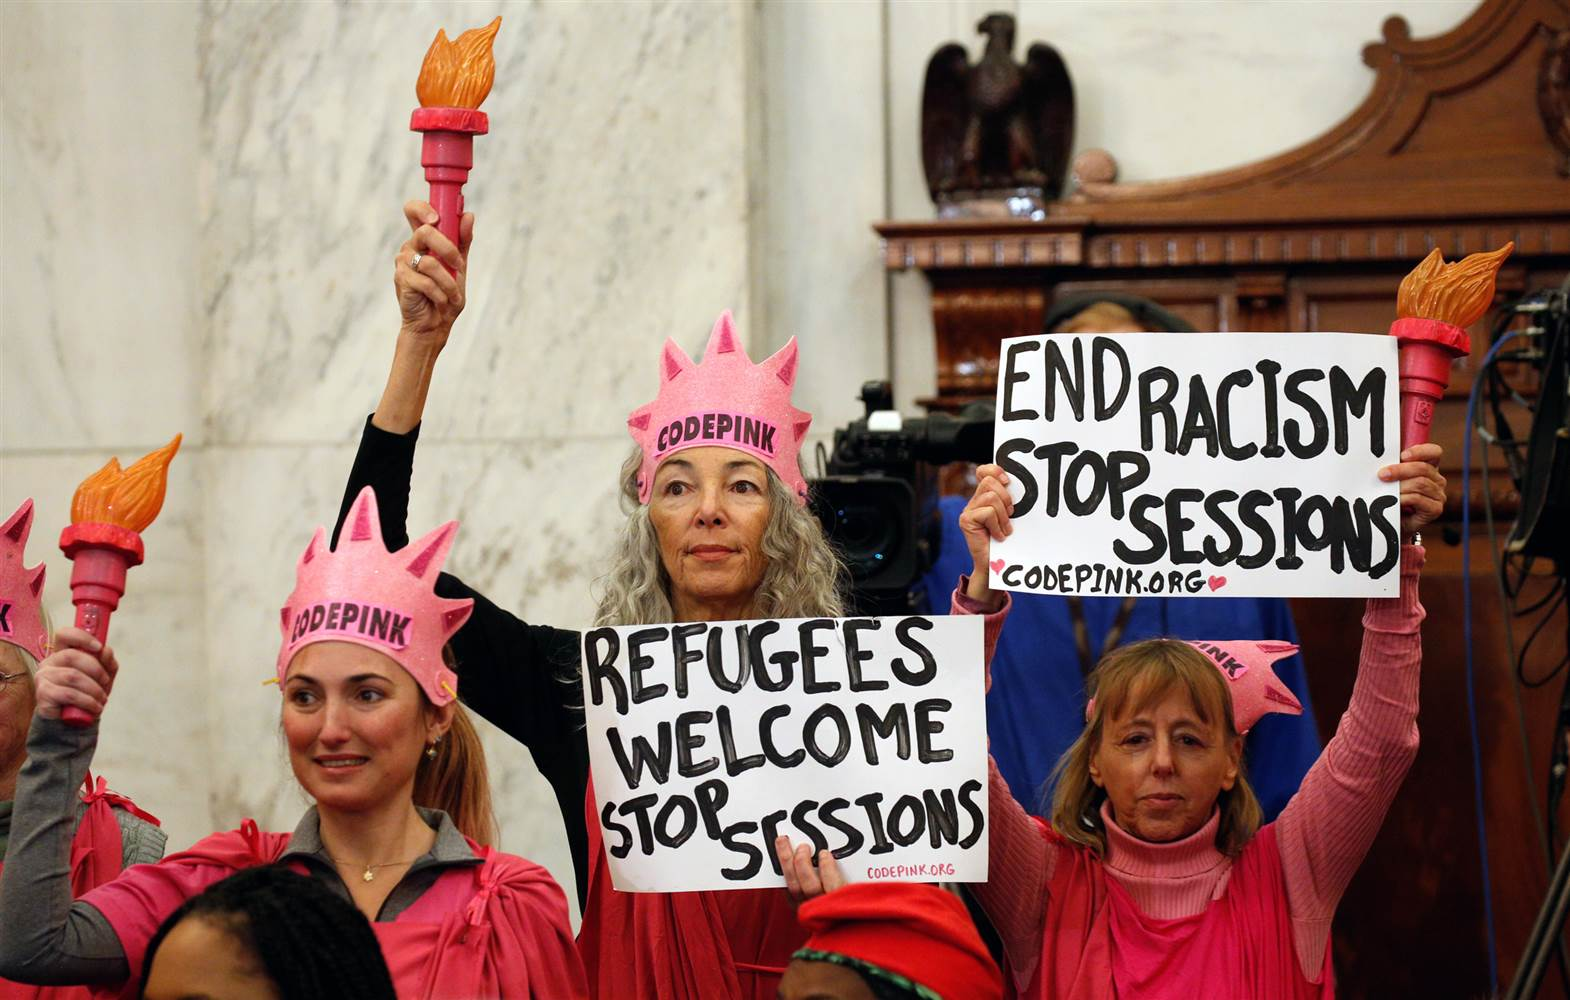 Code Pink Protesters Convicted for Disrupting Jeff Sessions Hearing